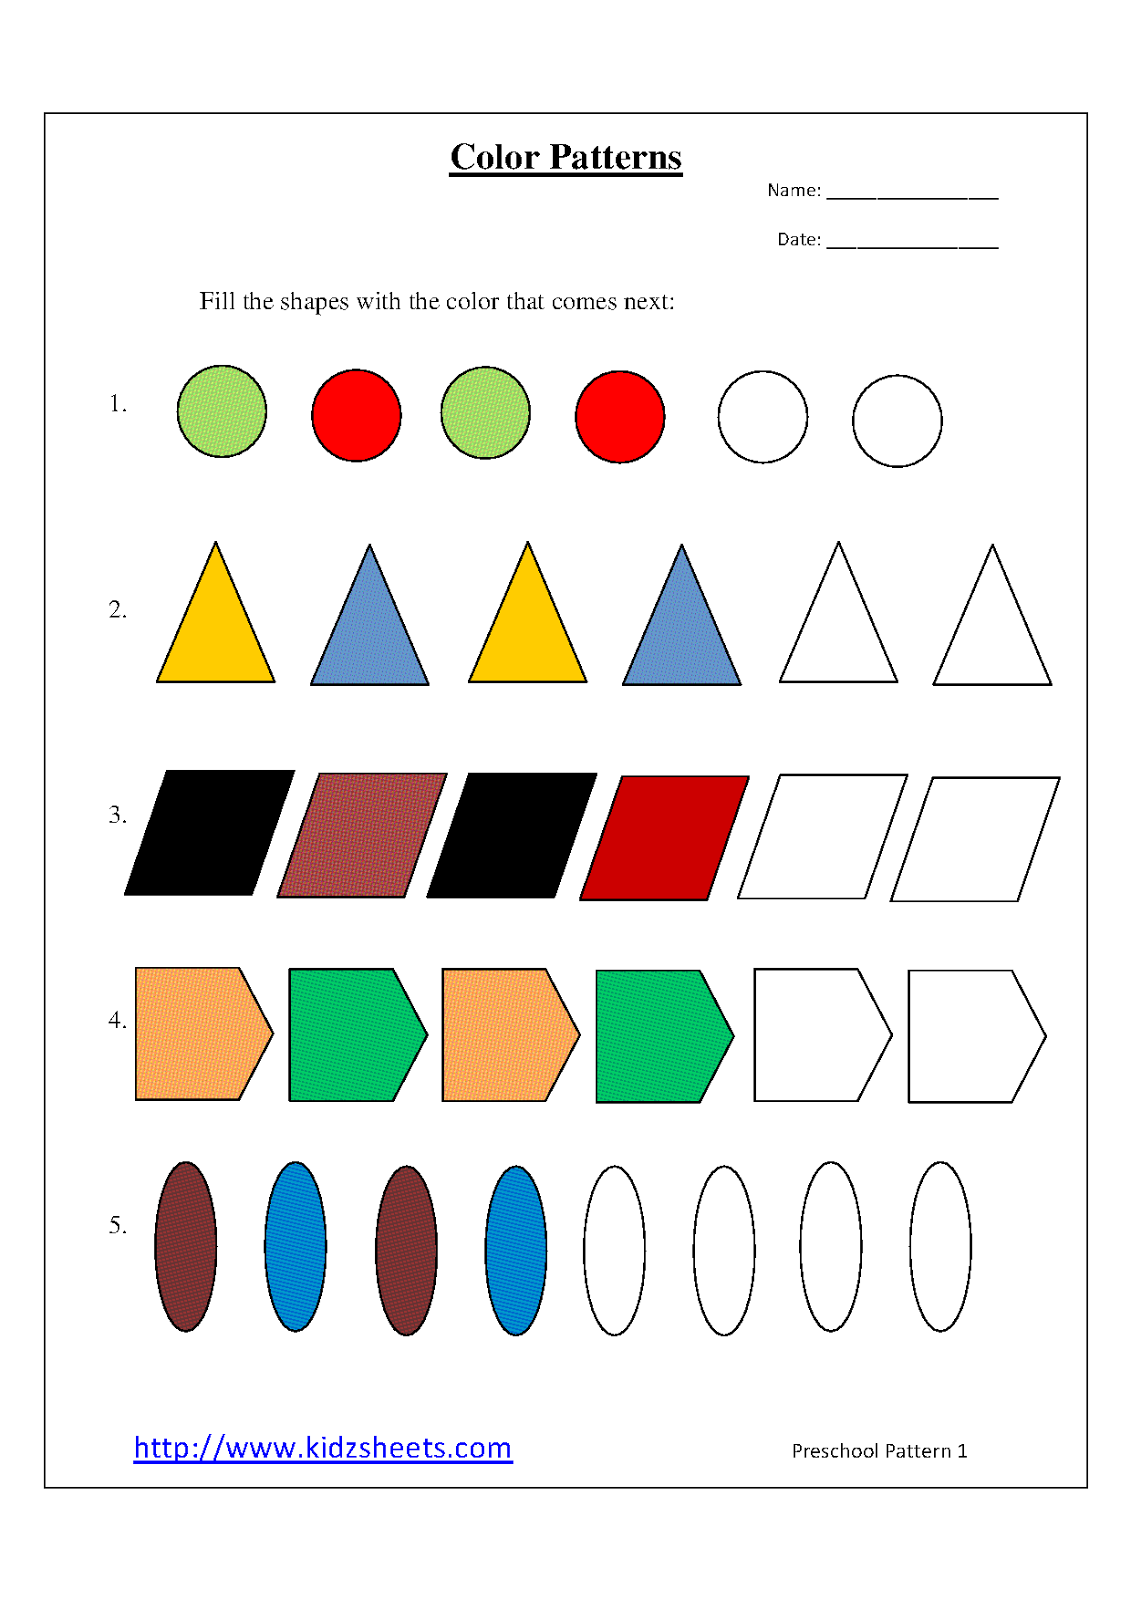 medium resolution of Kidz Worksheets: Preschool Color Patterns Worksheet1